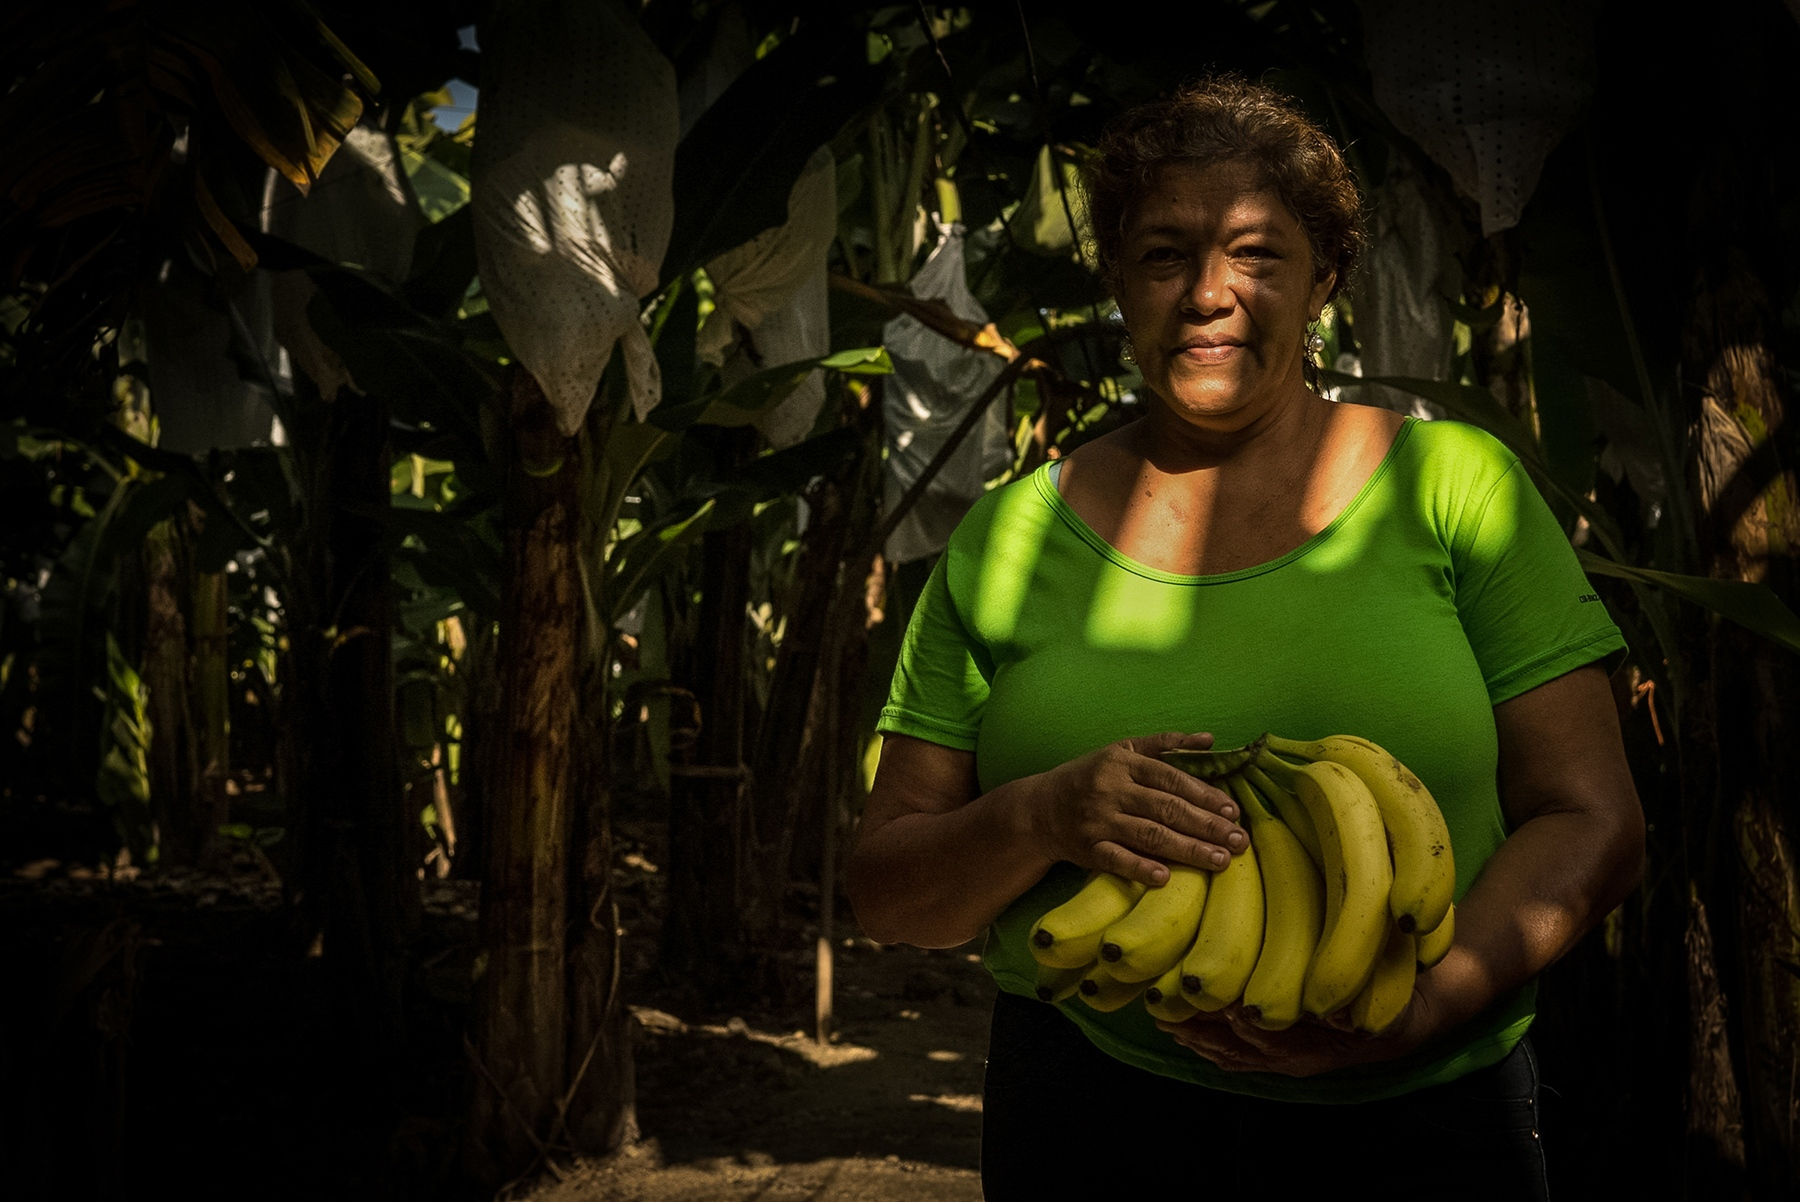 A portrait of Norma Gómez, 52, inside a Chiquita International banana field in La Lima, Honduras. Last February, workers of Chiquita went on strike to demand a medical clinic near their workplace. To this day, their request remains unanswered. With high production rates and little attention to conditions in the field, Chiquita, one of the biggest fruit companies to operate in Honduras and the leading distributor of bananas in the United States, exploits its workers.